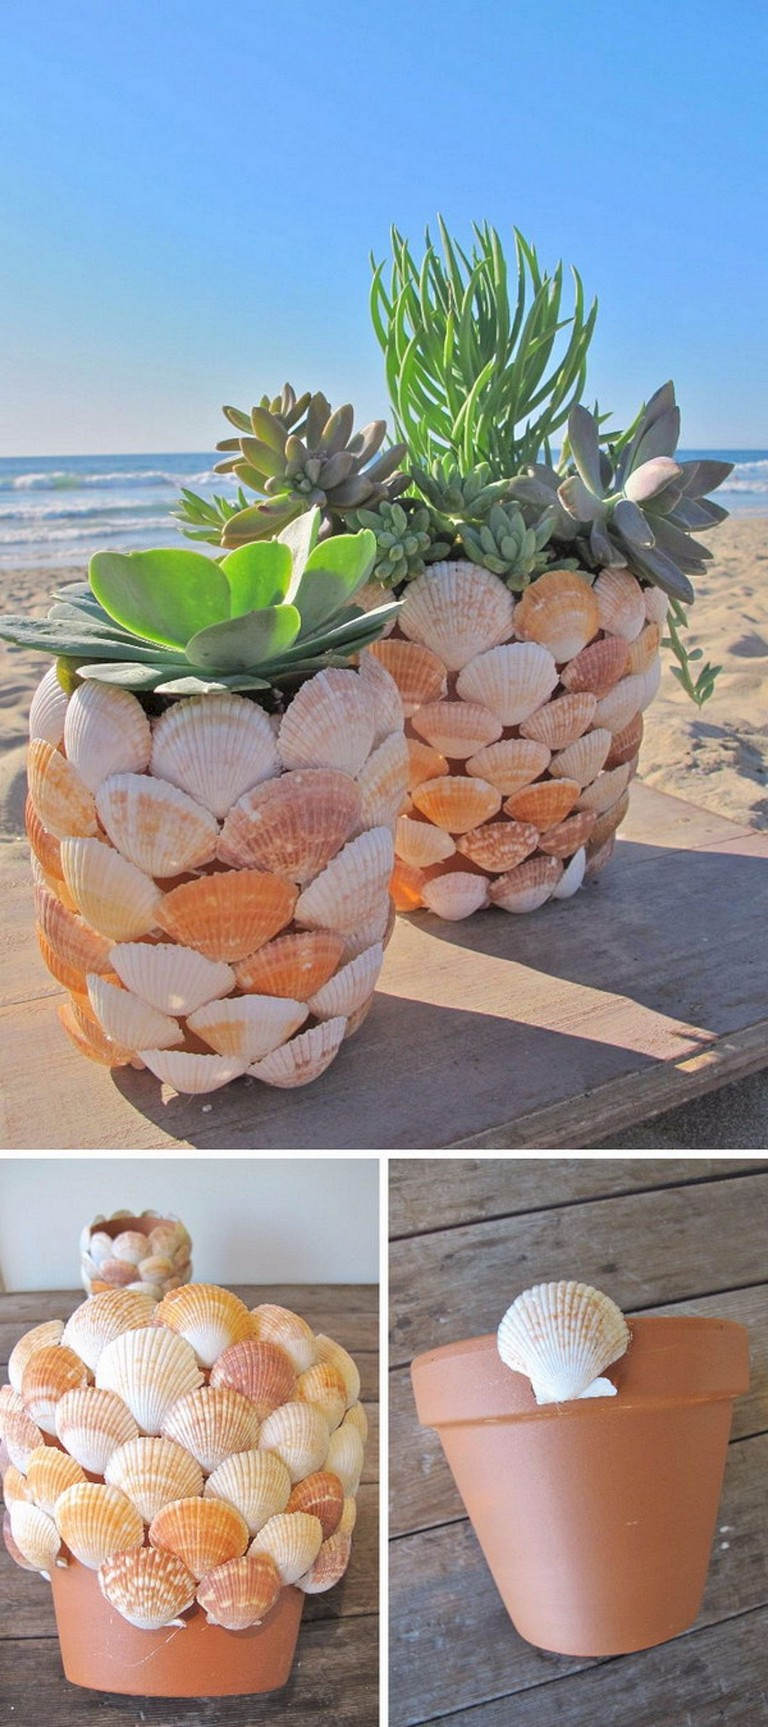 10 Simple DIY Vintage and Rustic Garden Decor Ideas on A Budget